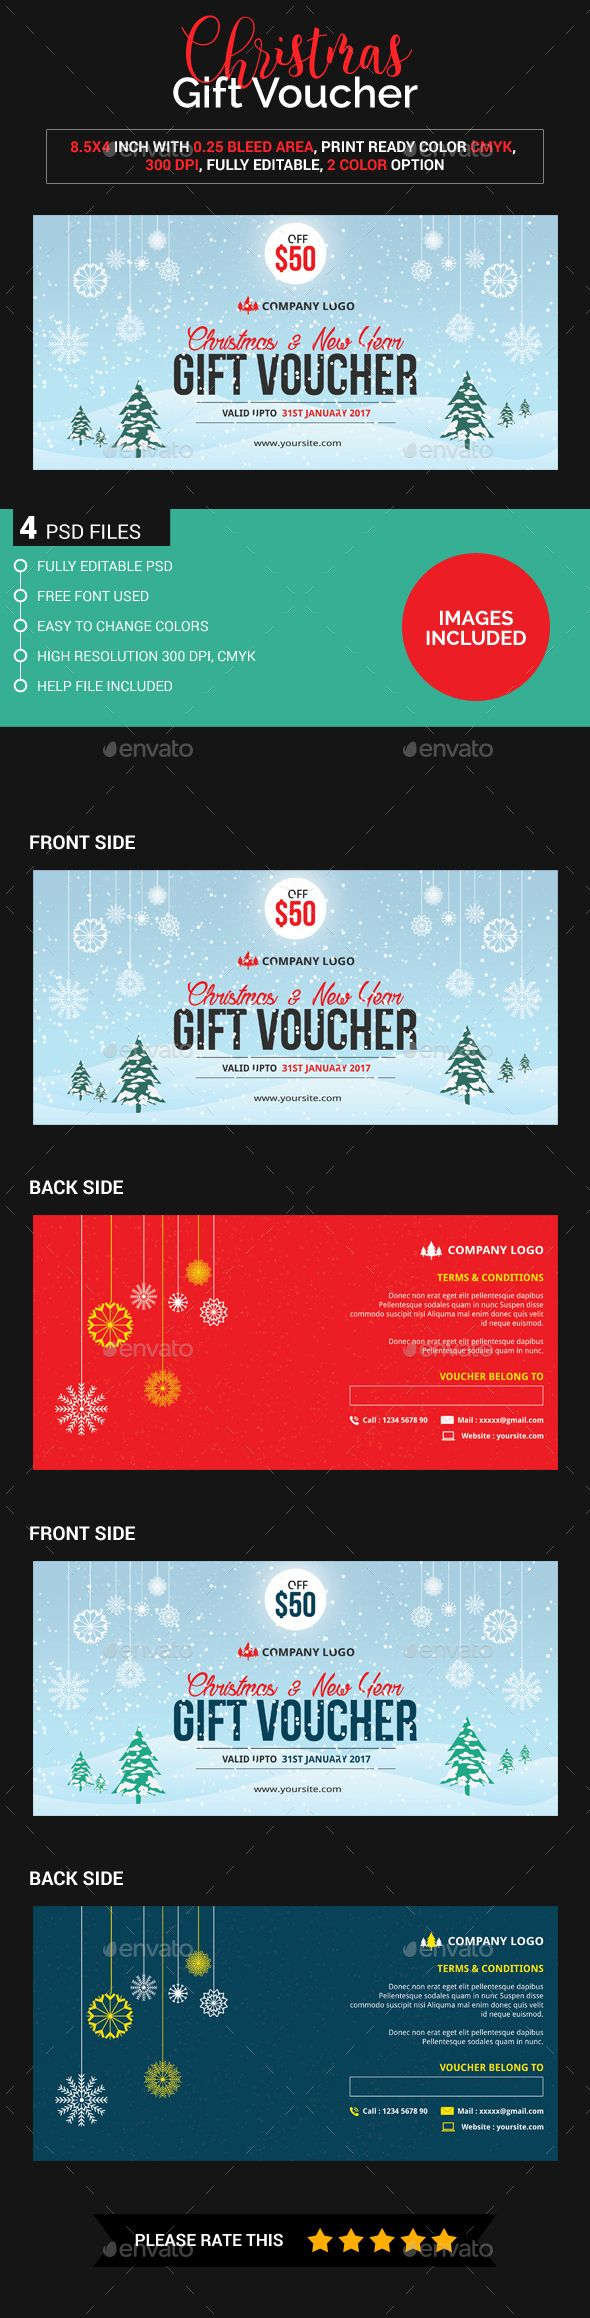 25 best gift voucher design templates images on pinterest design christmas gift voucher images included yelopaper Images